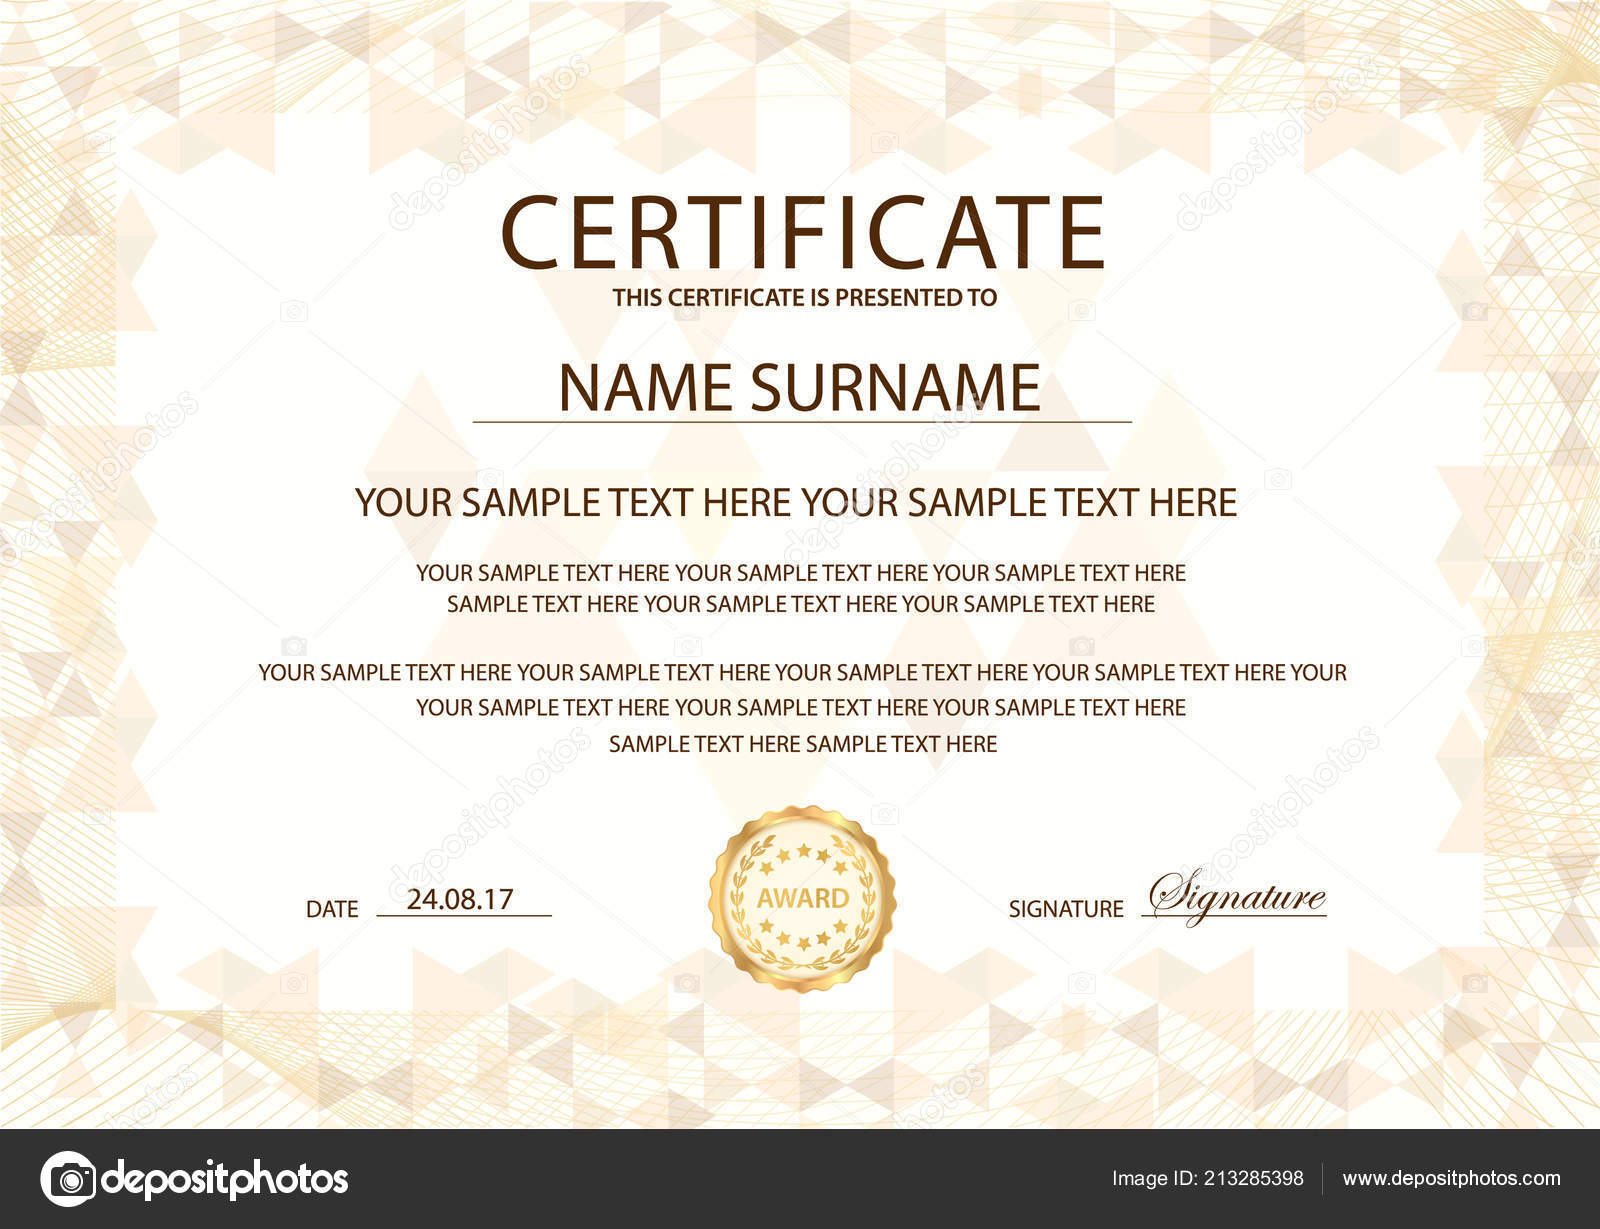 It is an image of Free Printable Certificates of Achievement intended for superlative